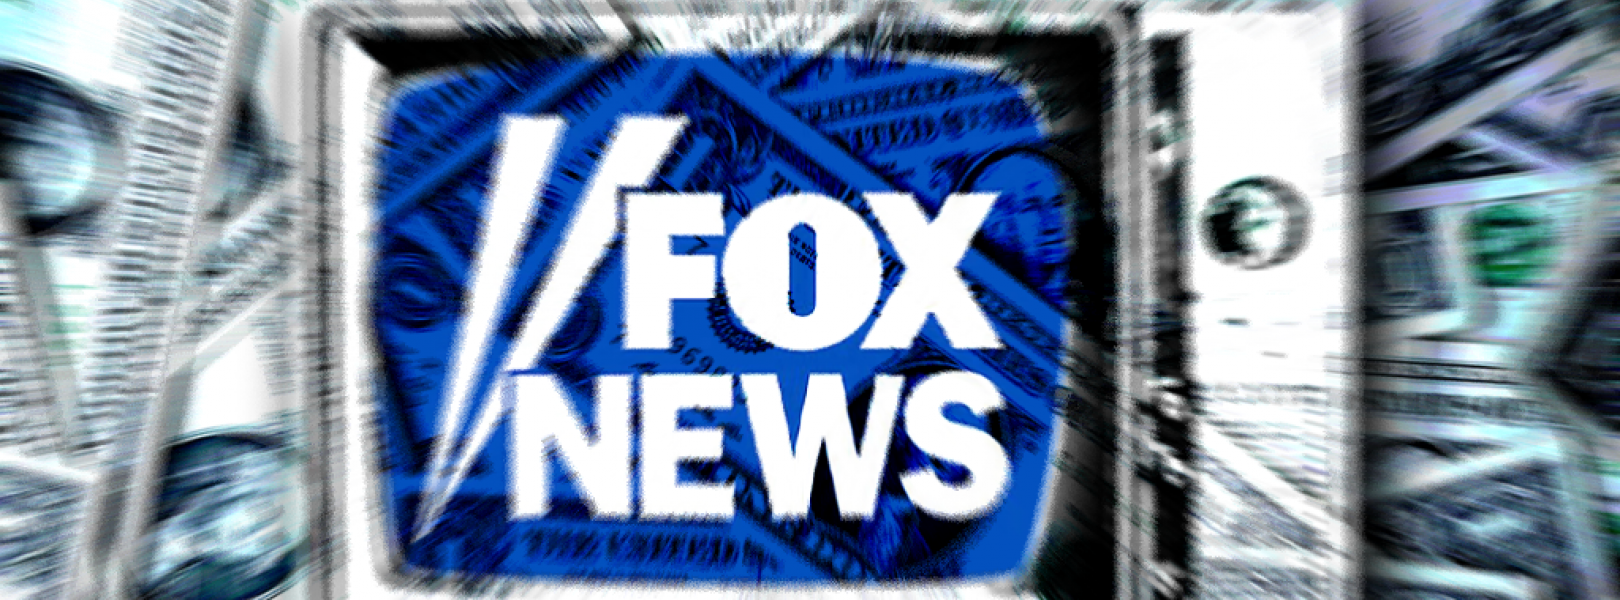 Fox News on a TV with a background of cash